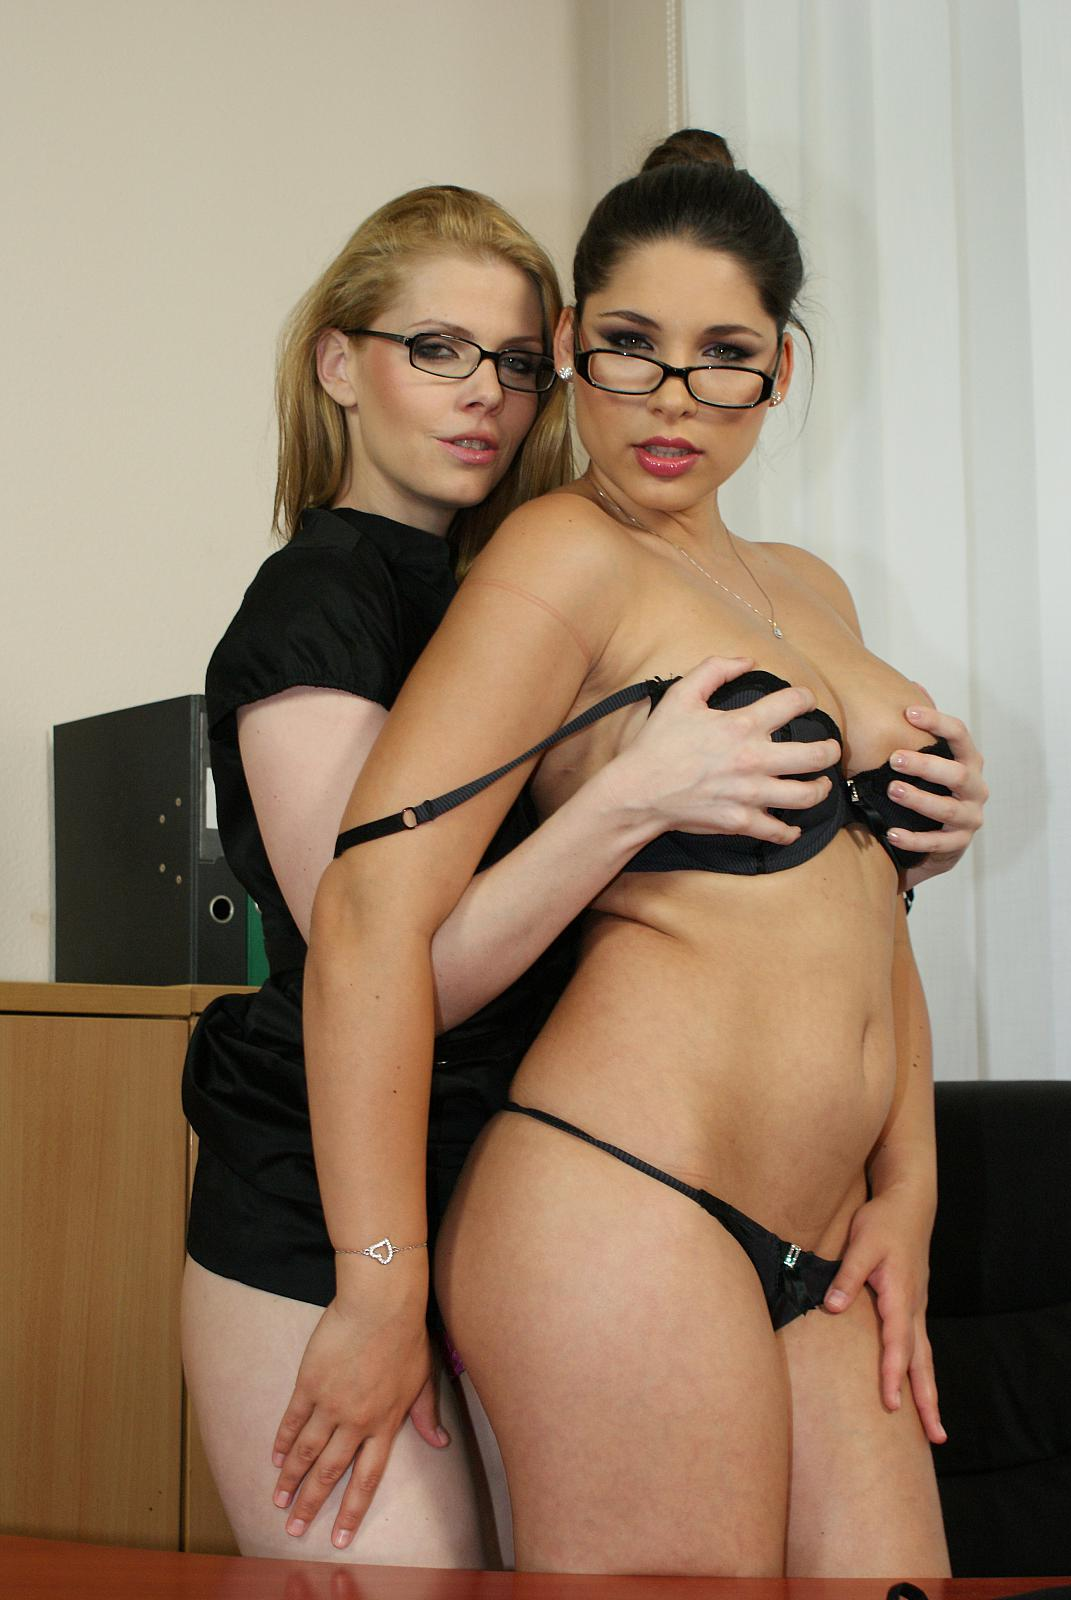 zafira lesbian porn Watch the video [Peaches free porn online  and.